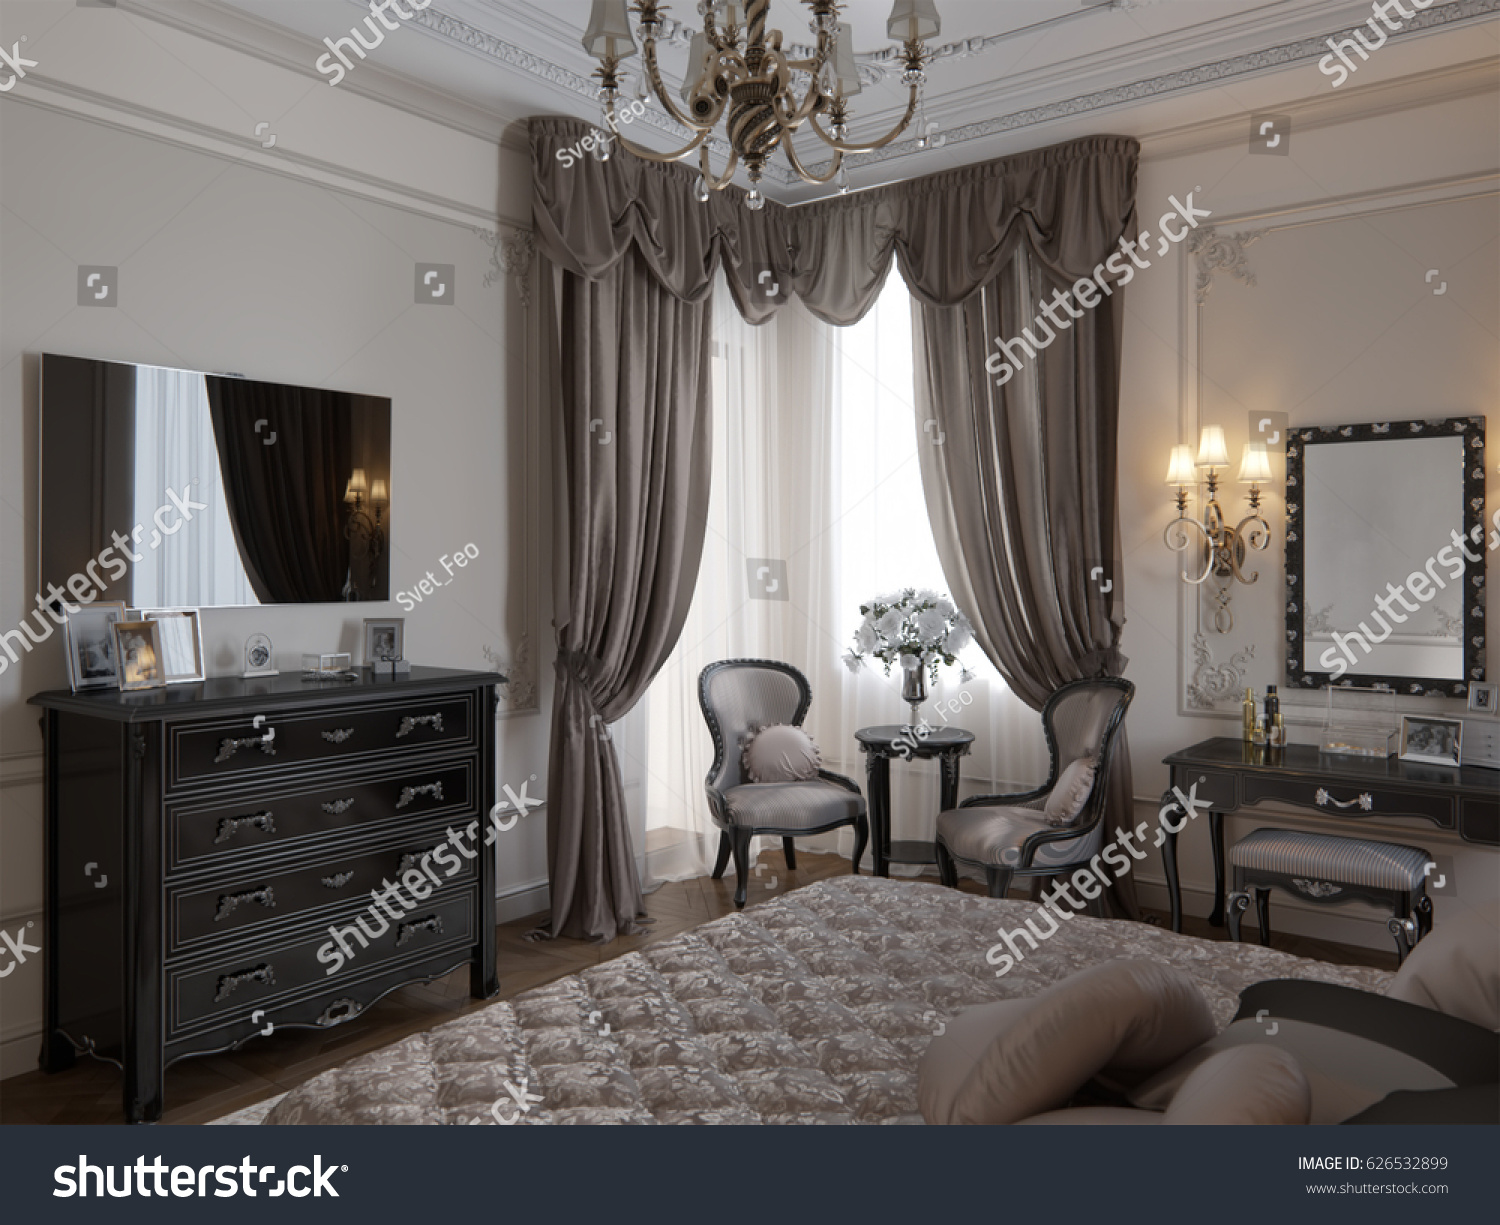 Luxury classic modern bedroom interior design stock illustration 626532899 shutterstock - Beautiful contemporary bedroom design ideas for releasing stress at home ...